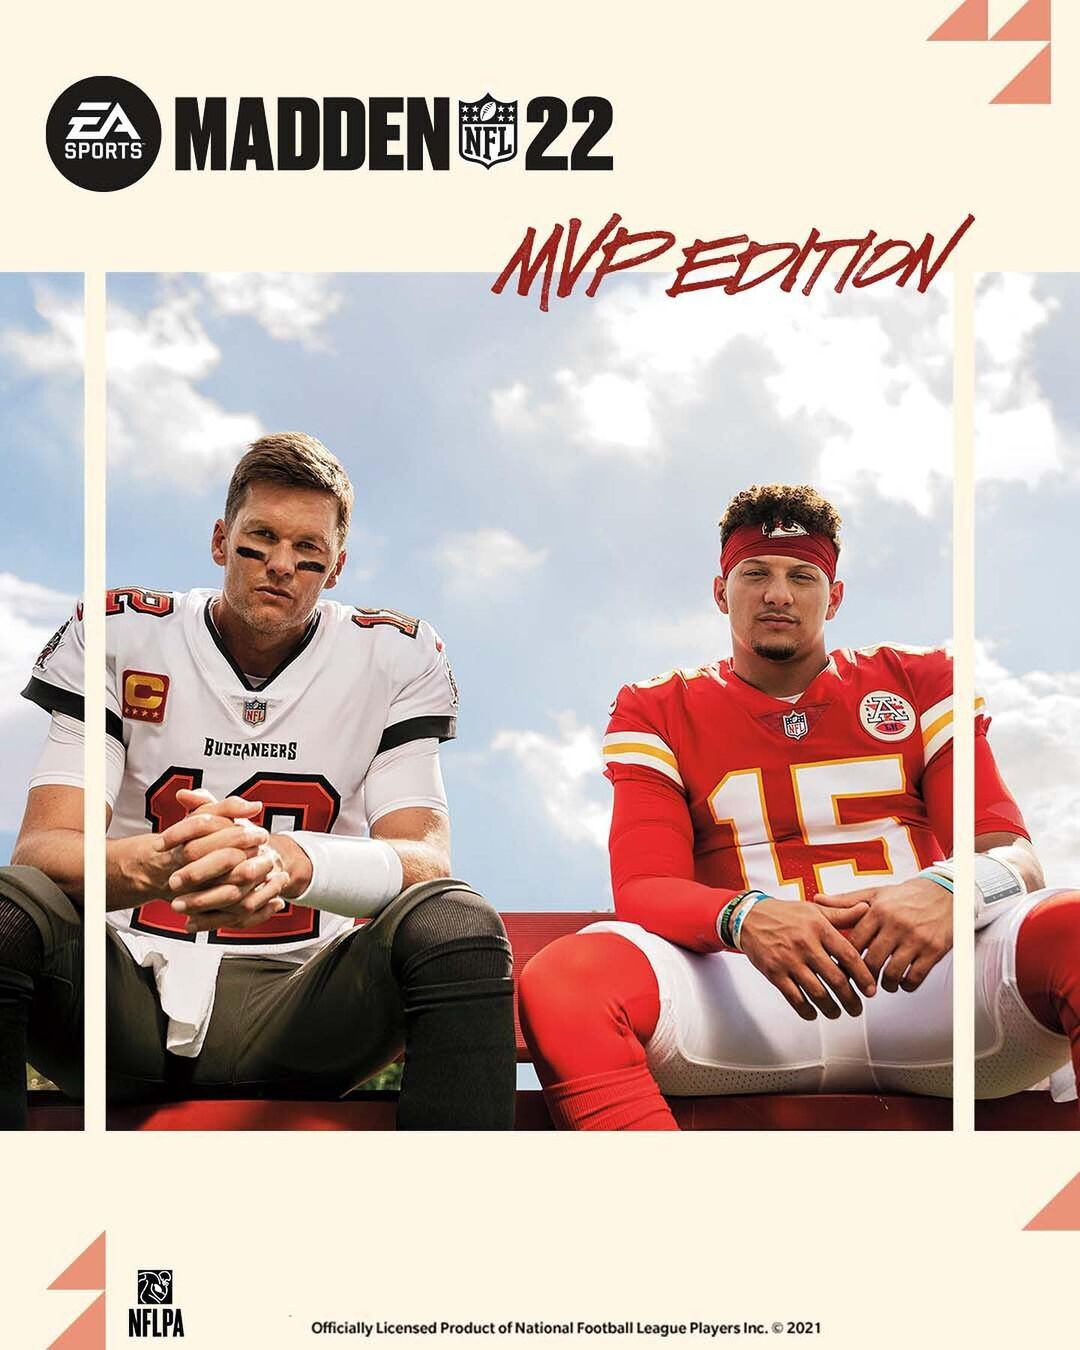 Madden NFL 22 Free Game Giveaway